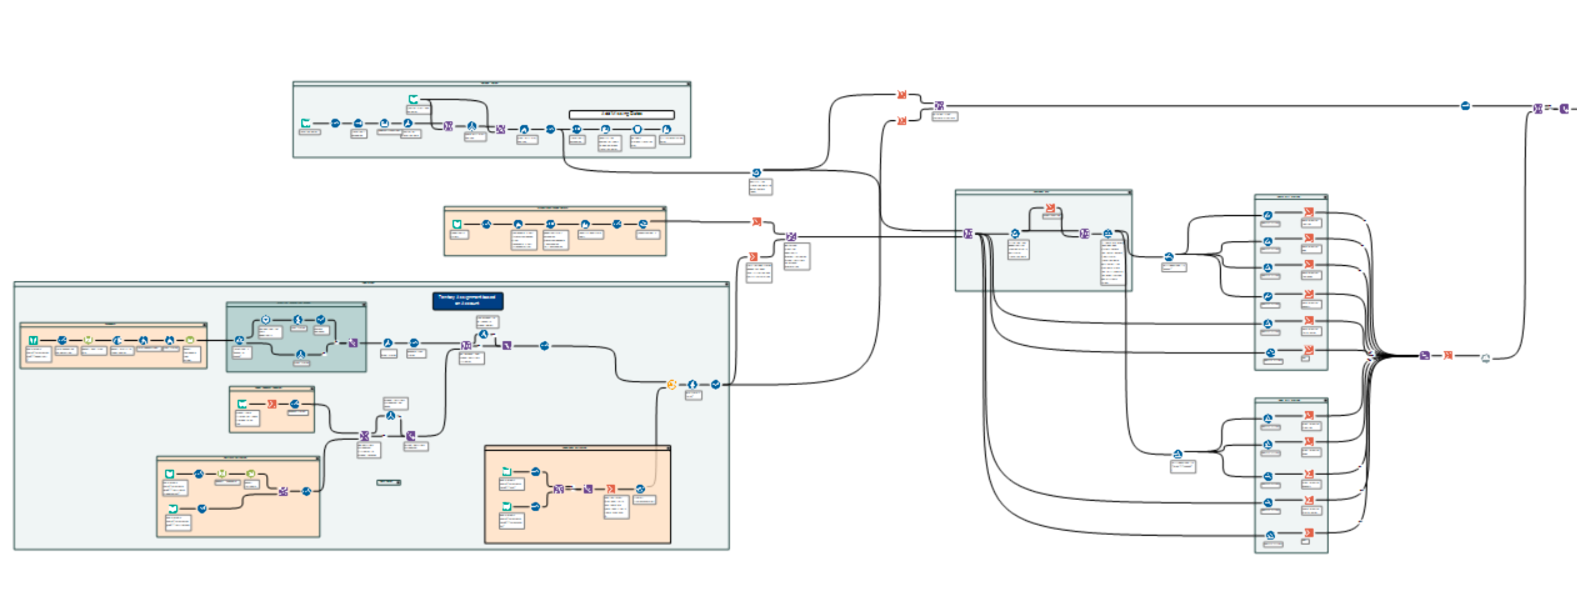 Some Of My Favorite Alteryx Tools Settings Pixel Mixer Datatool System 3 Wiring Diagram Containers